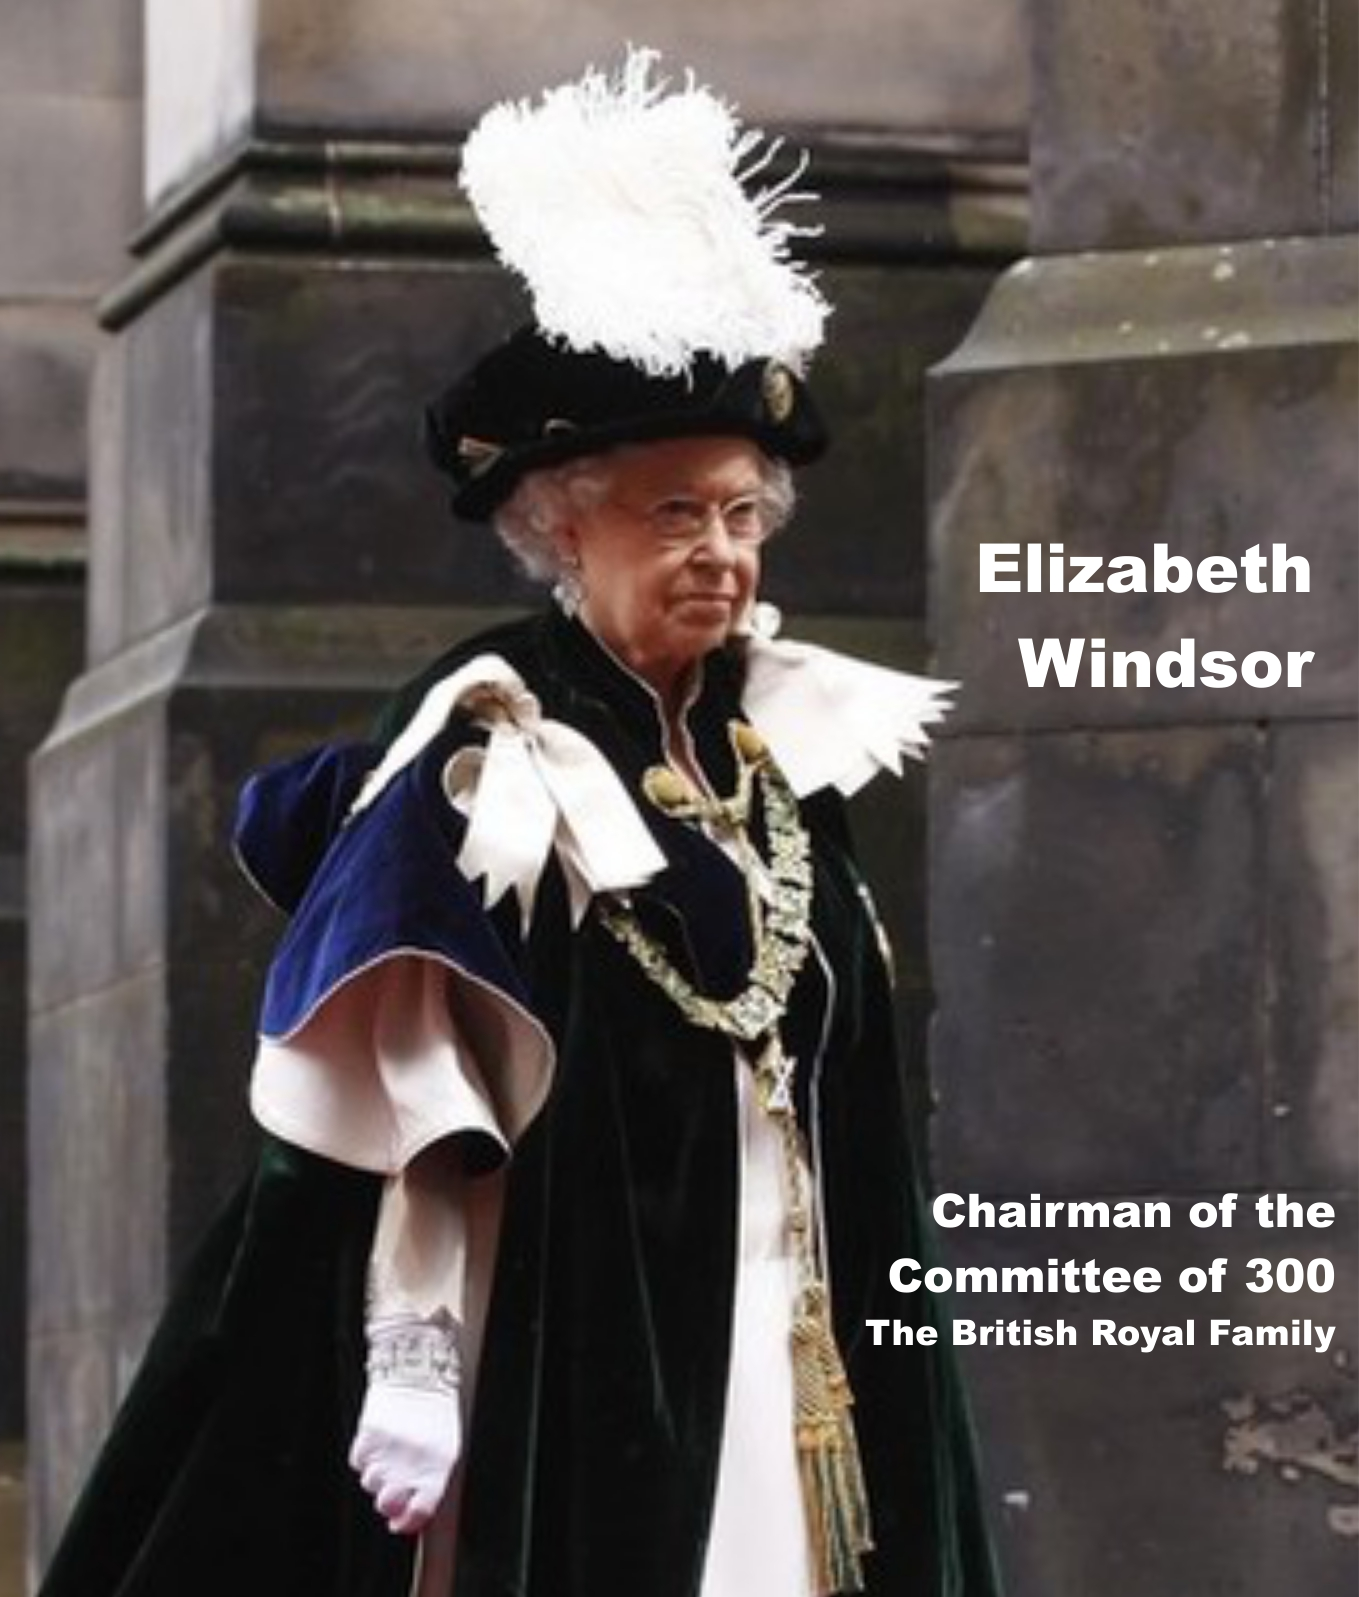 European bloodlines face end-time vortex of exposure  Elizabeth%2BWindsor%2B-%2BChairman%2Bof%2Bthe%2BCommittee%2Bof%2B300